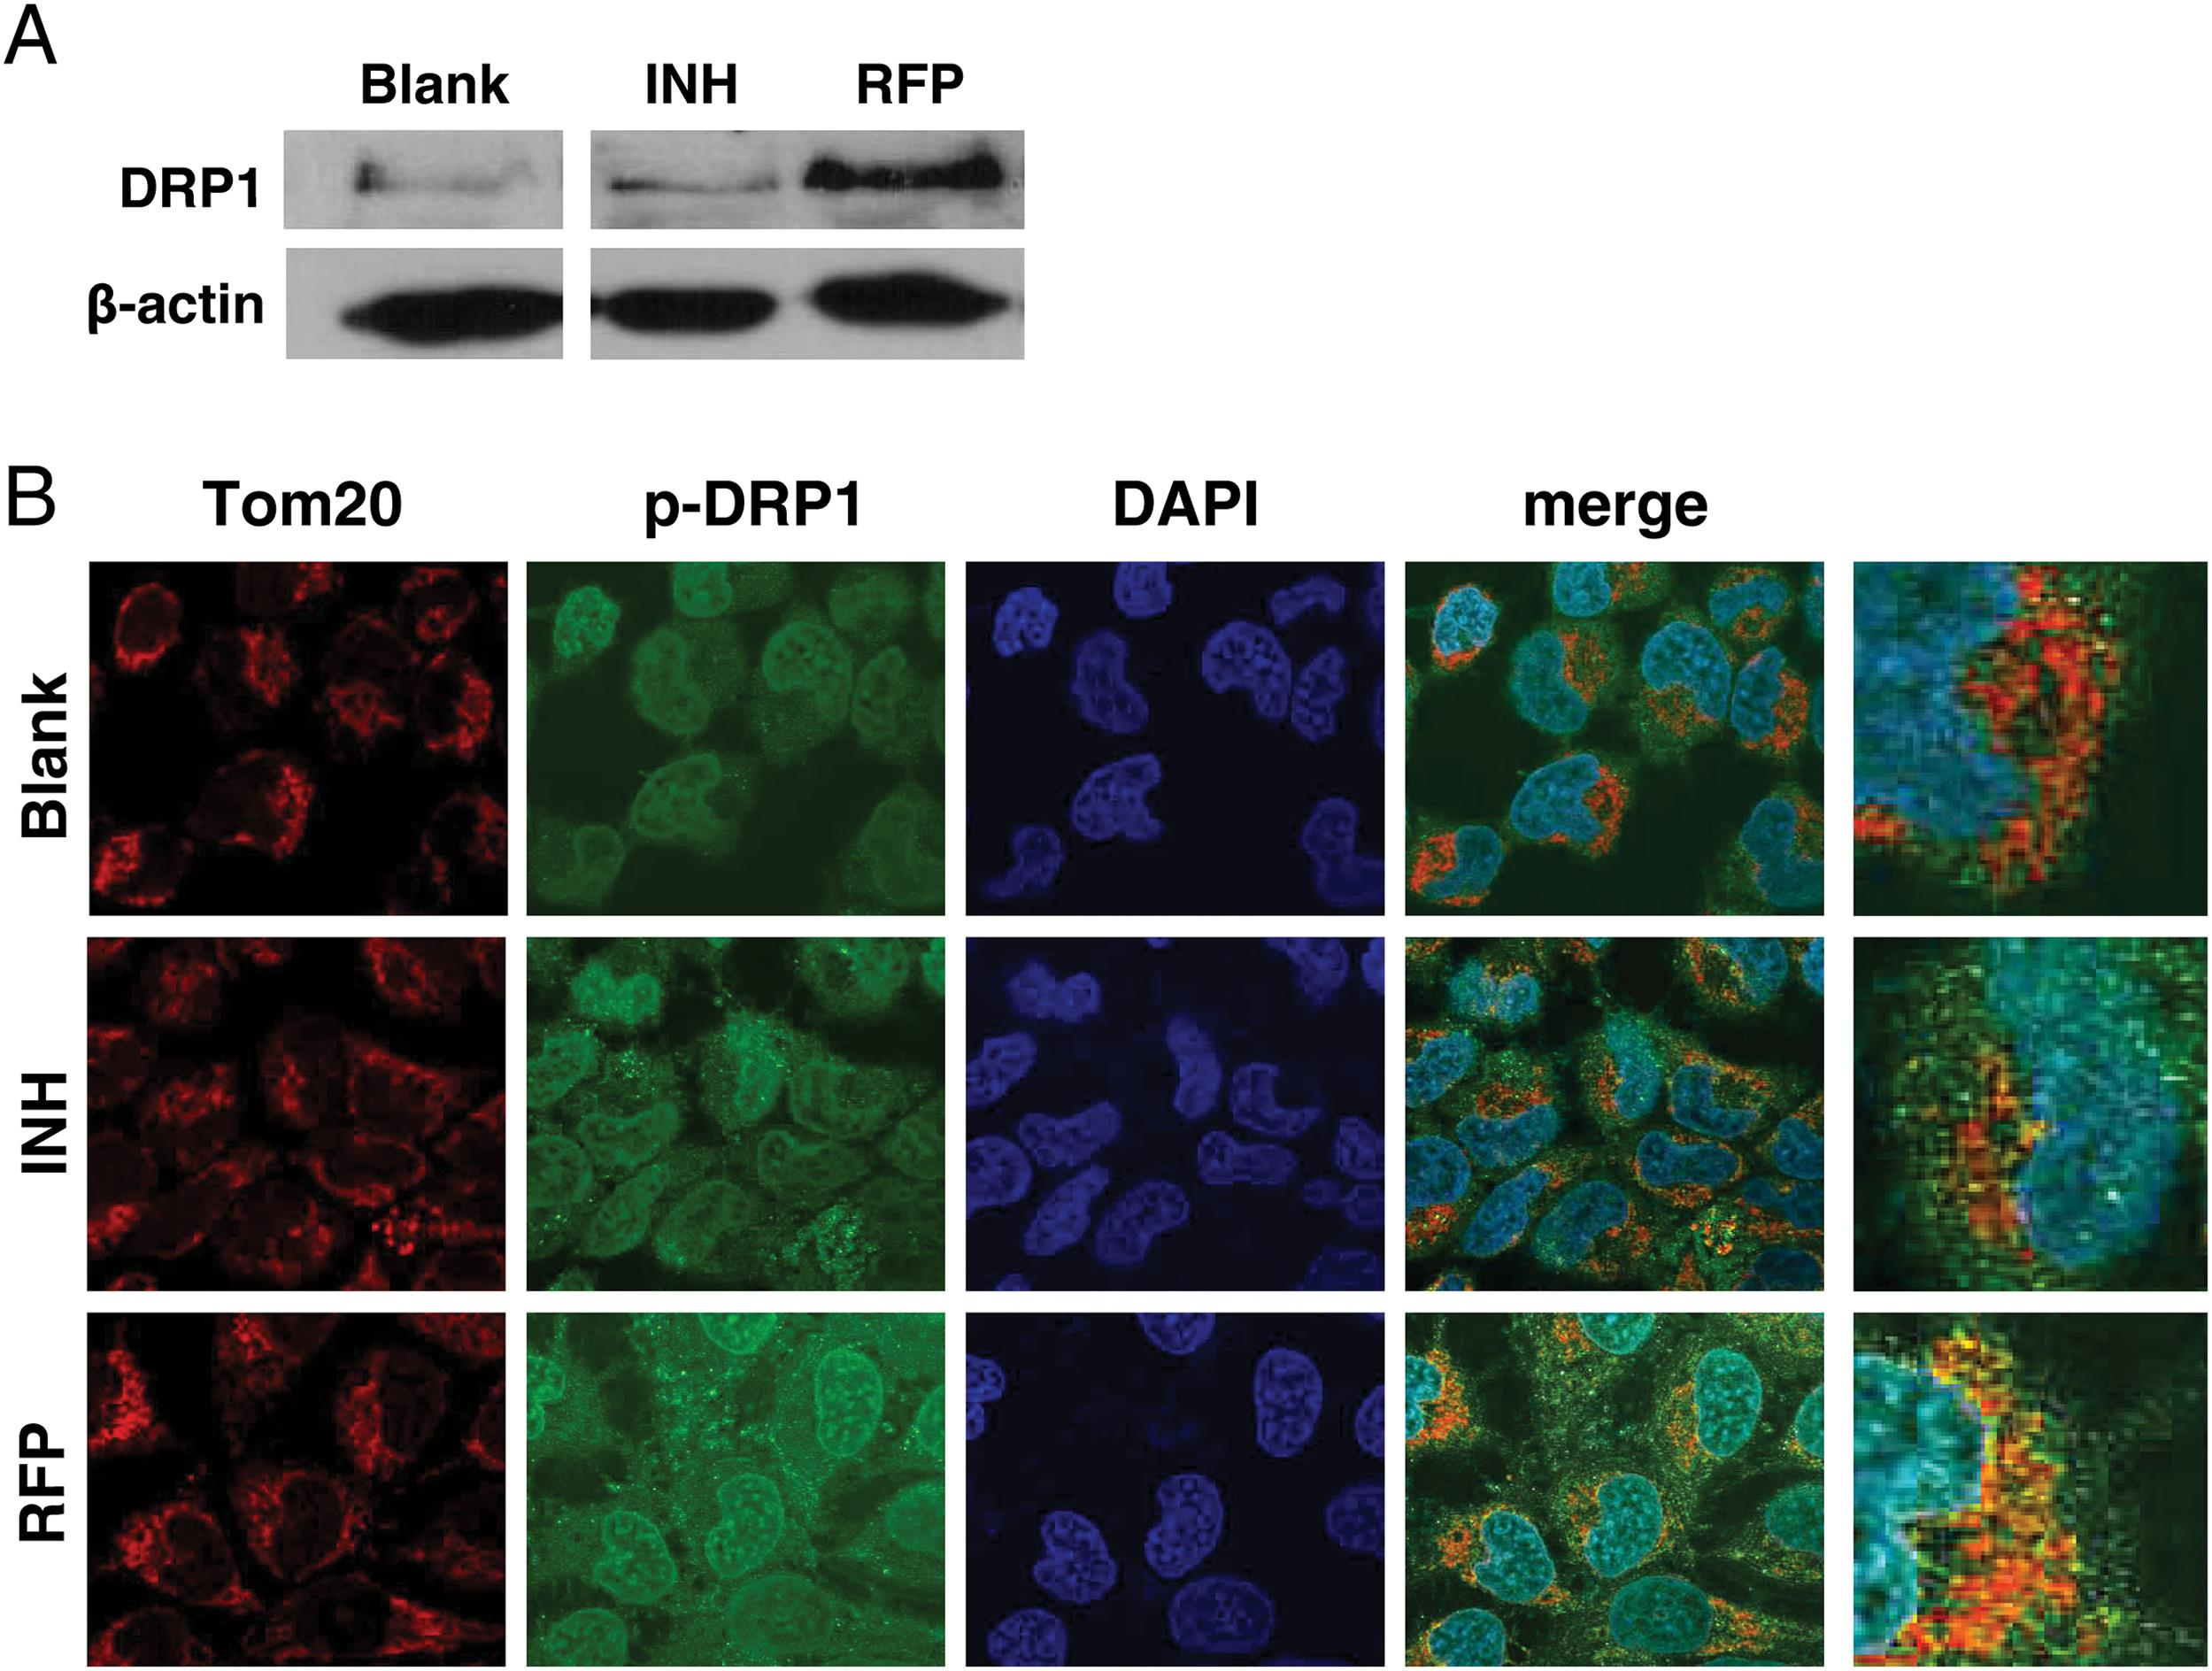 Effect of RFP and INH on the expression and activation of Drp1 in QSG7701 cells.